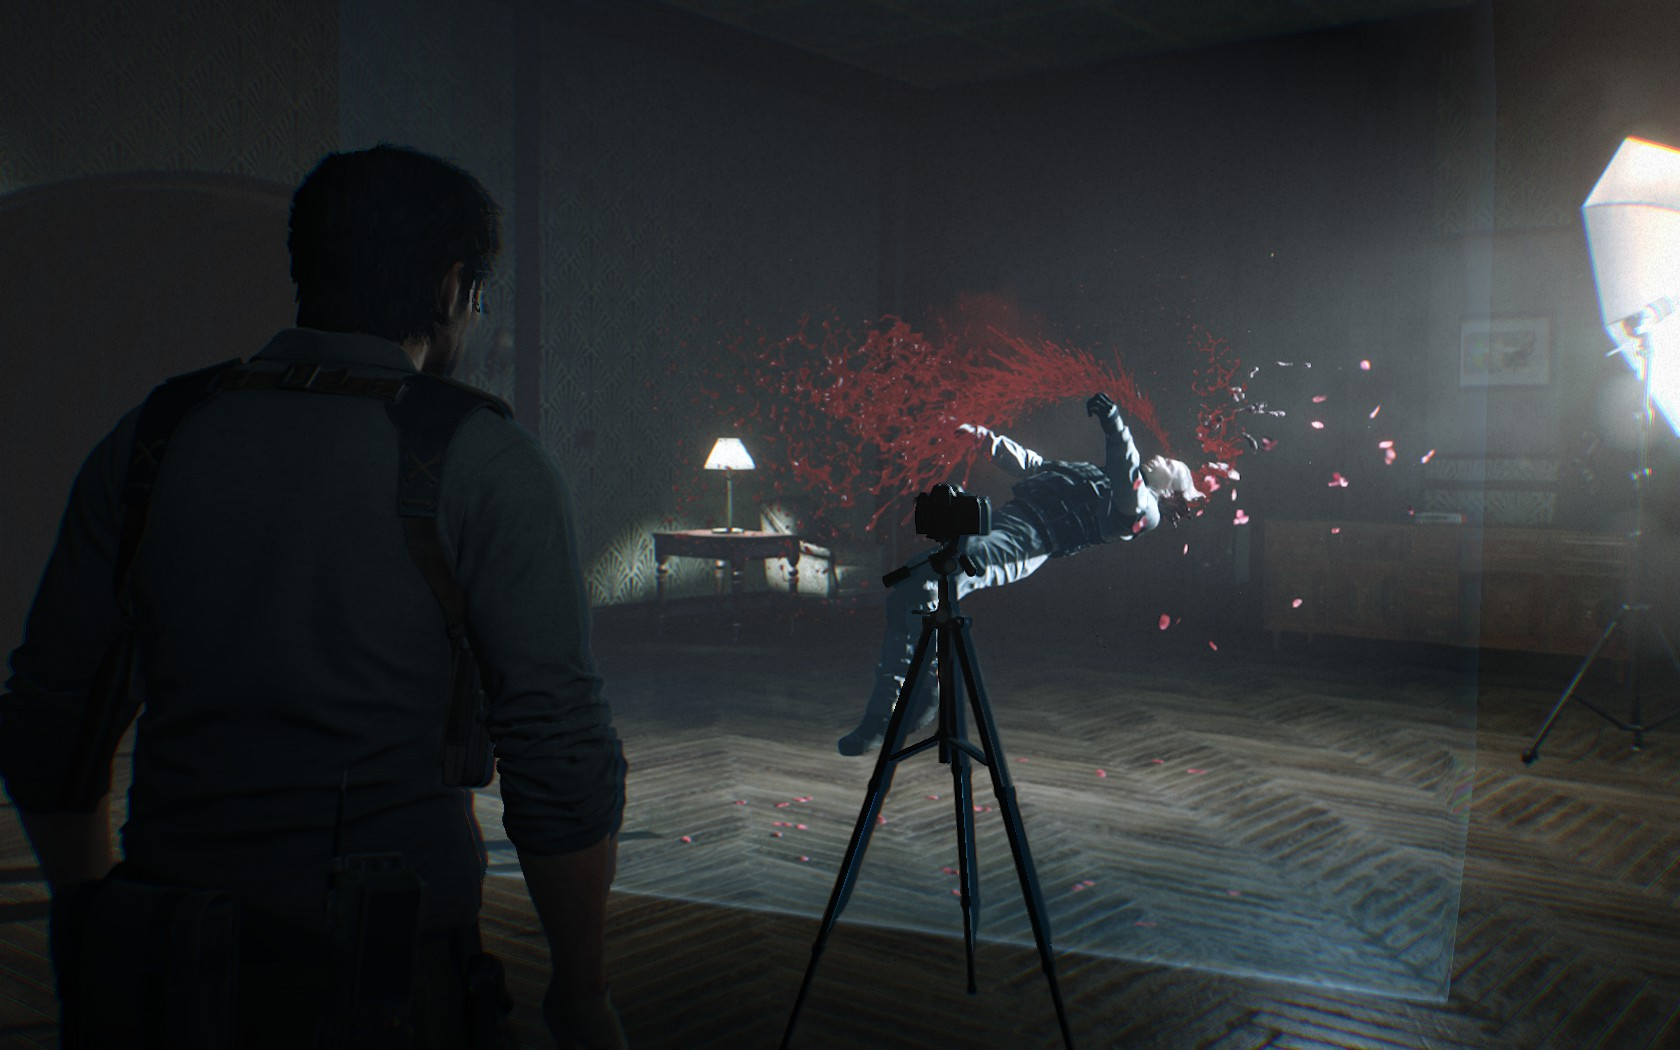 601430_screenshots_20171013175340_1.jpg - Evil Within 2, the